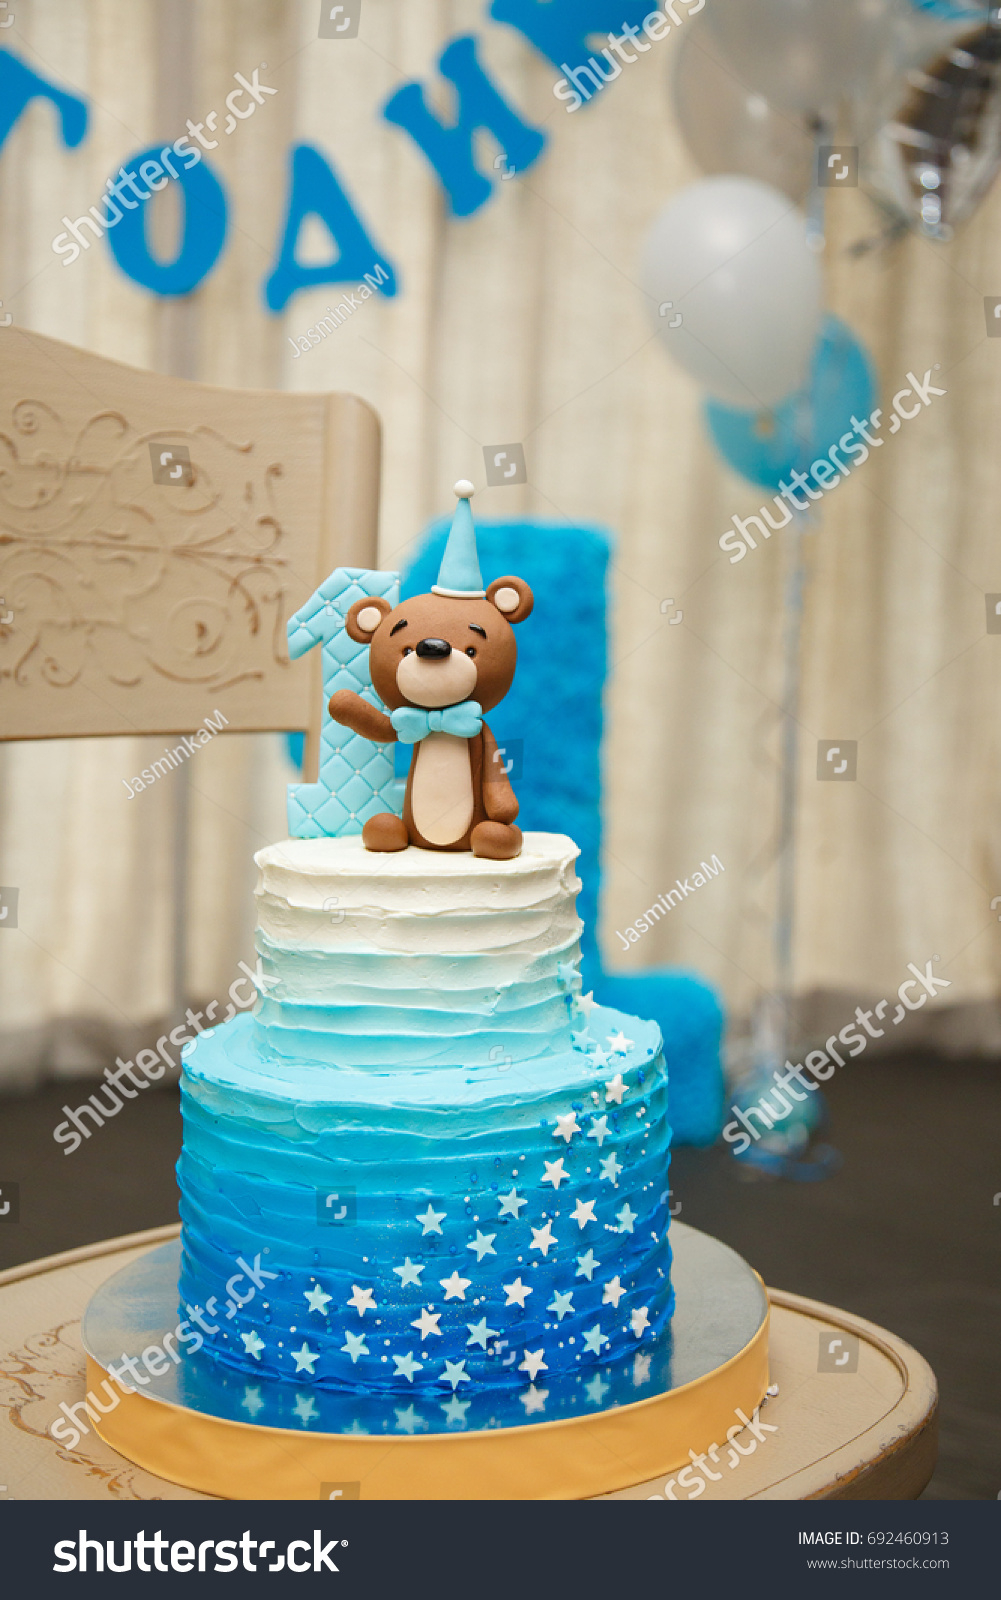 1st Birthday Cake Boy.First Birthday Cake Boy Images Cake And Photos Masakanenak Com